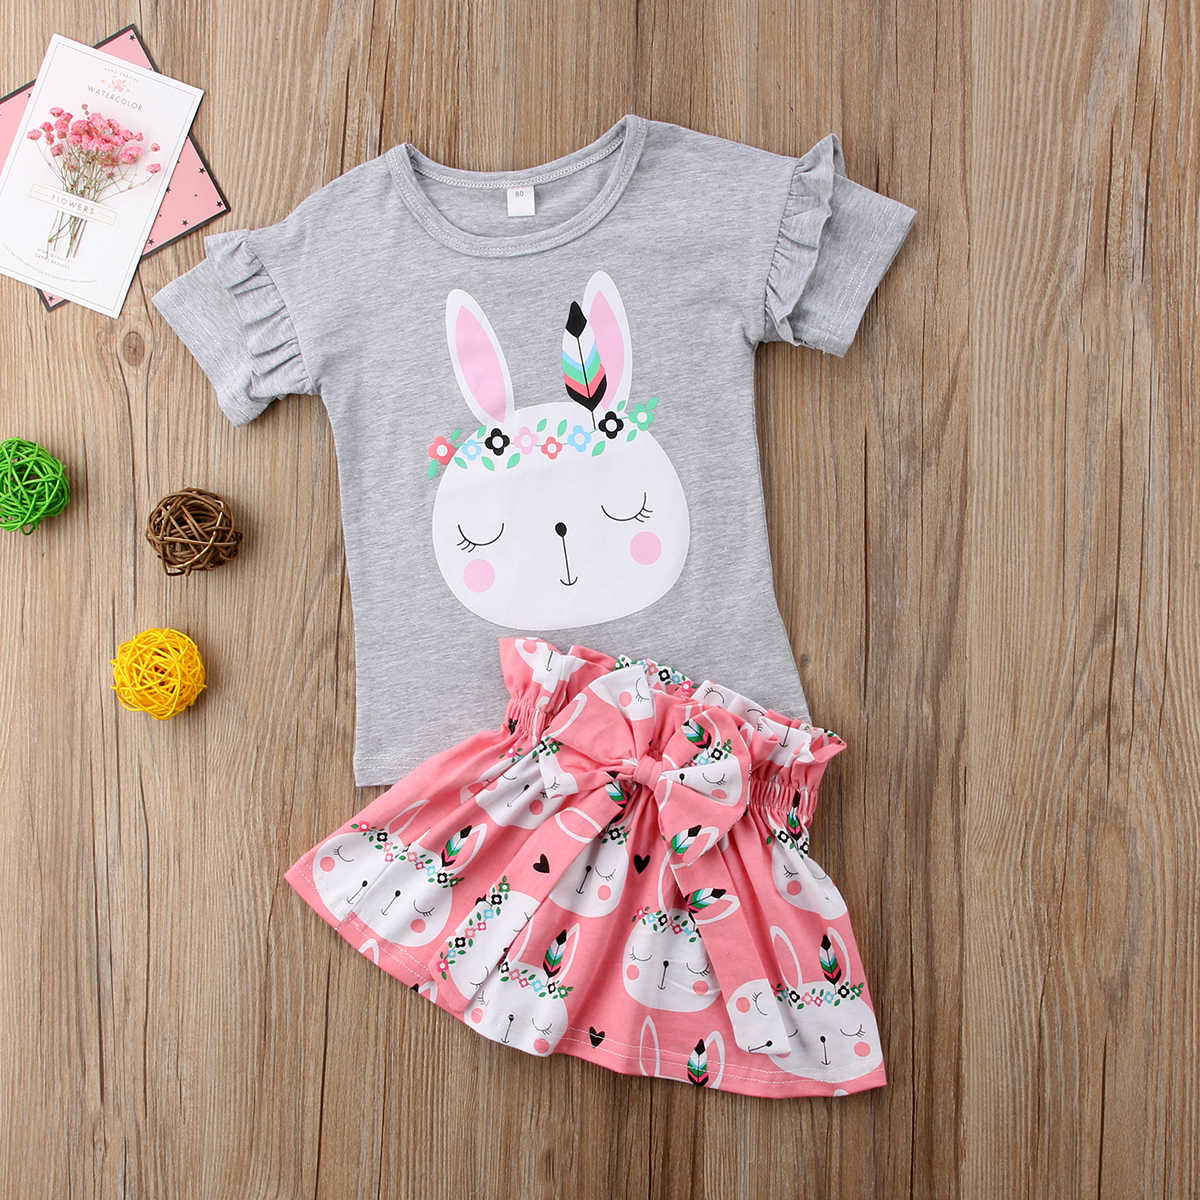 0af75c7a4 Detail Feedback Questions about Sweet Toddler Kids Baby Girls Cute ...